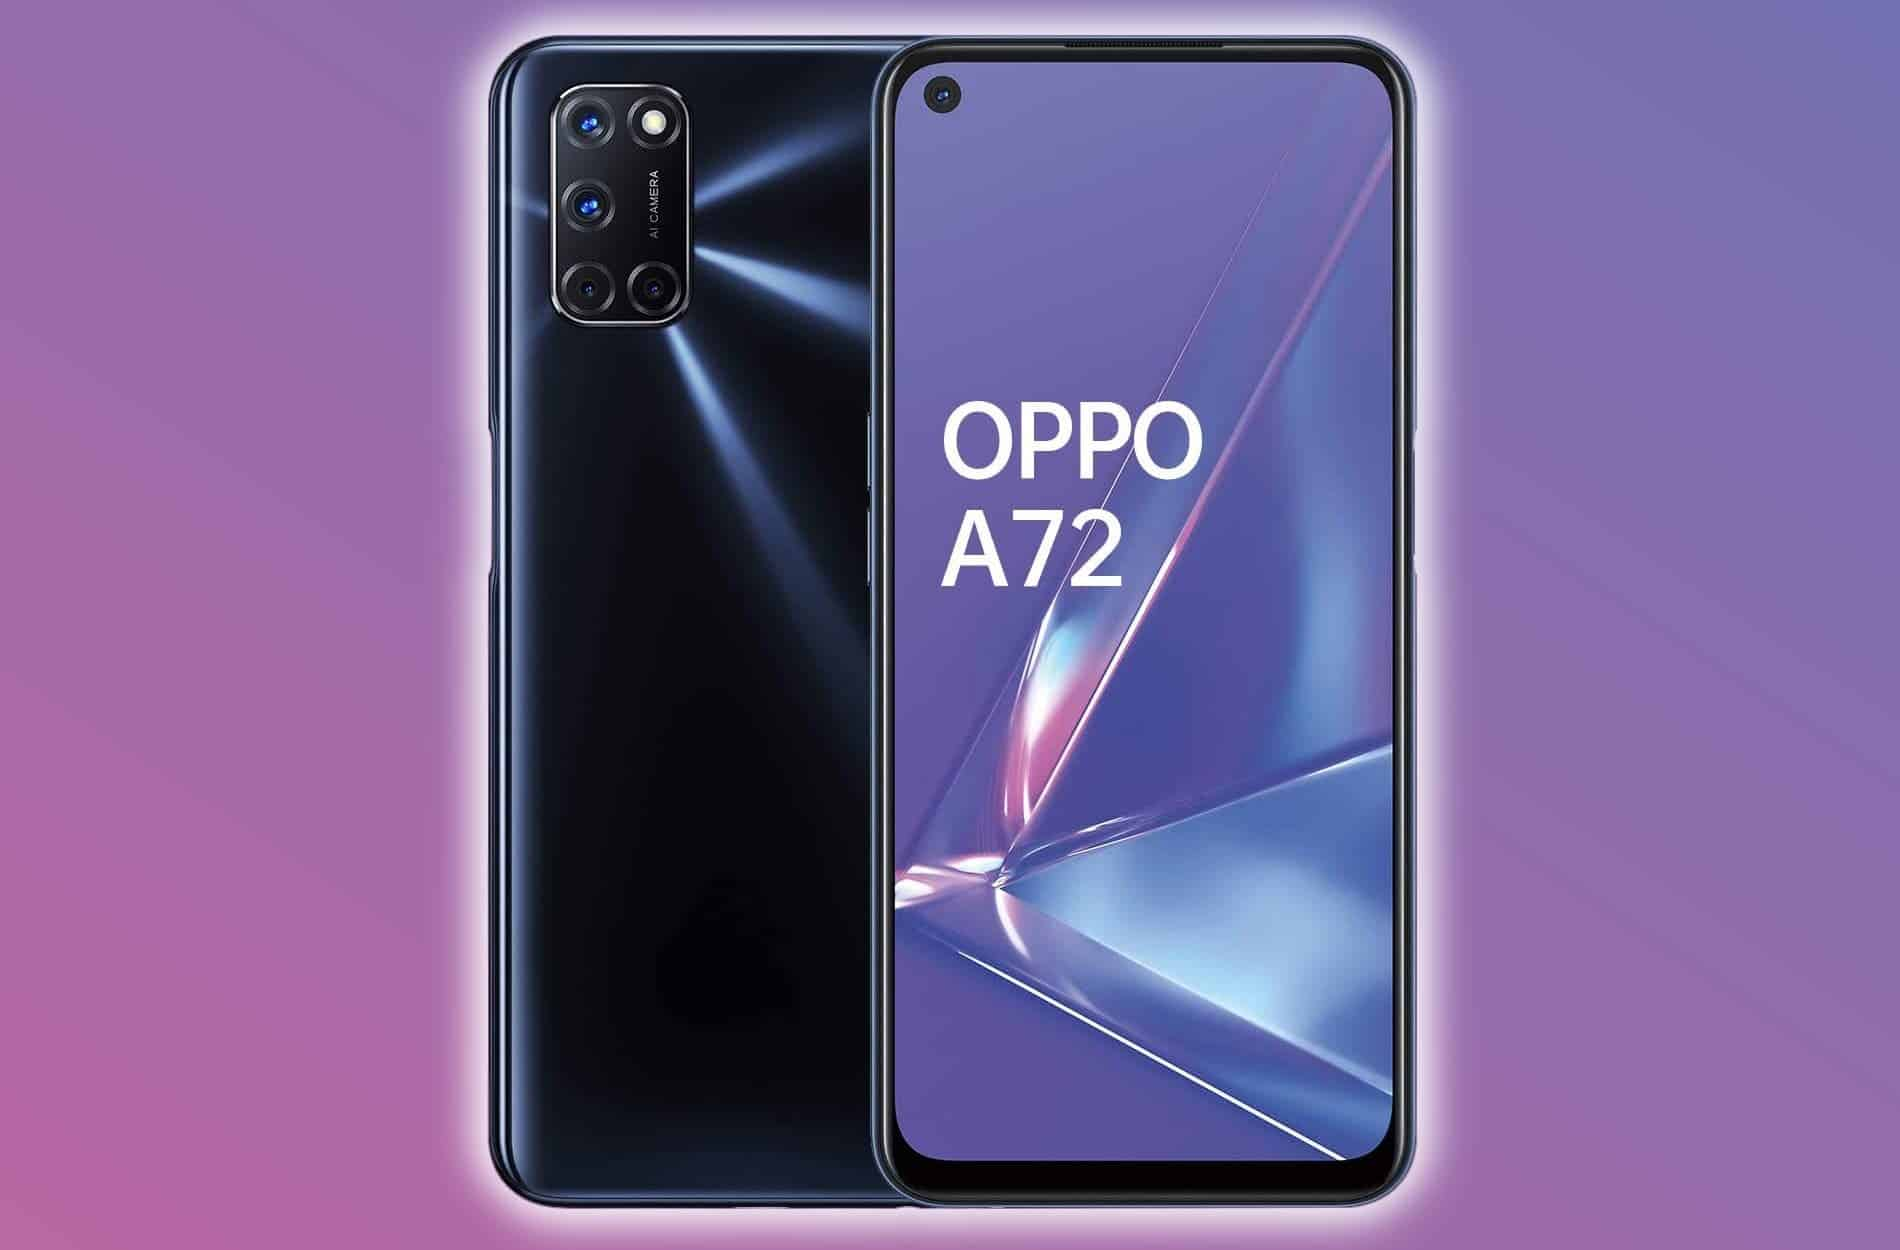 Oppo A72 heading to South Africa as Oppo is entering the region - Gizchina.com